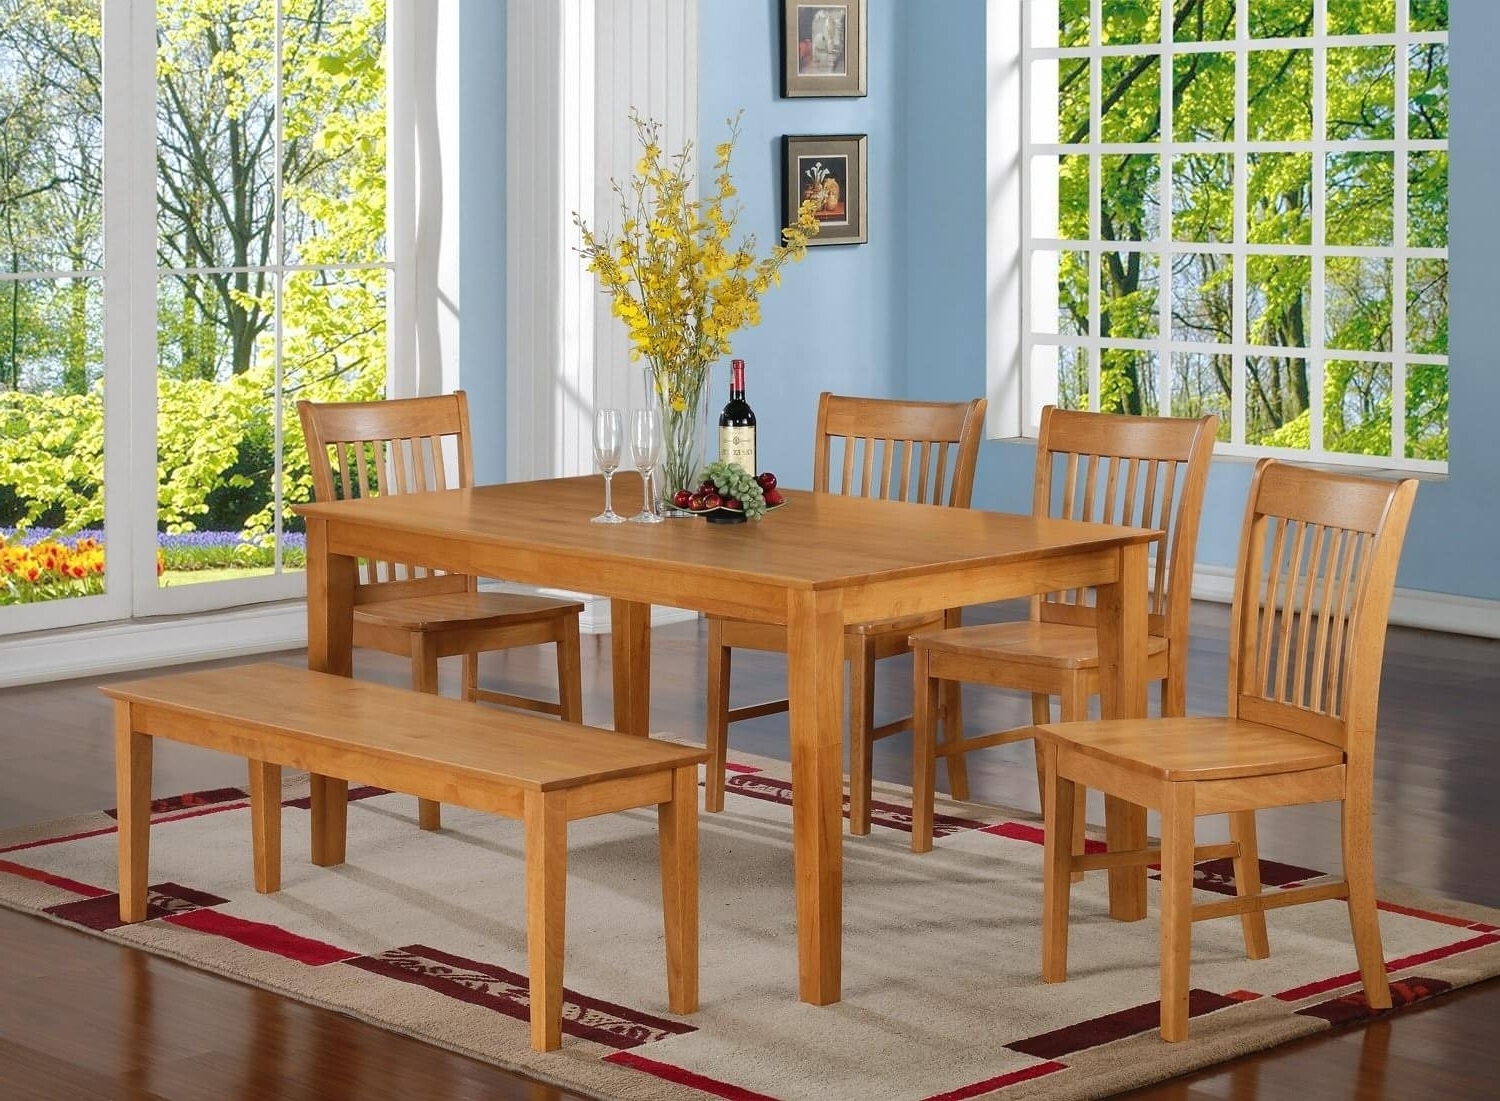 Most Popular 26 Dining Room Sets (Big And Small) With Bench Seating (2018) Regarding Indoor Picnic Style Dining Tables (View 18 of 25)